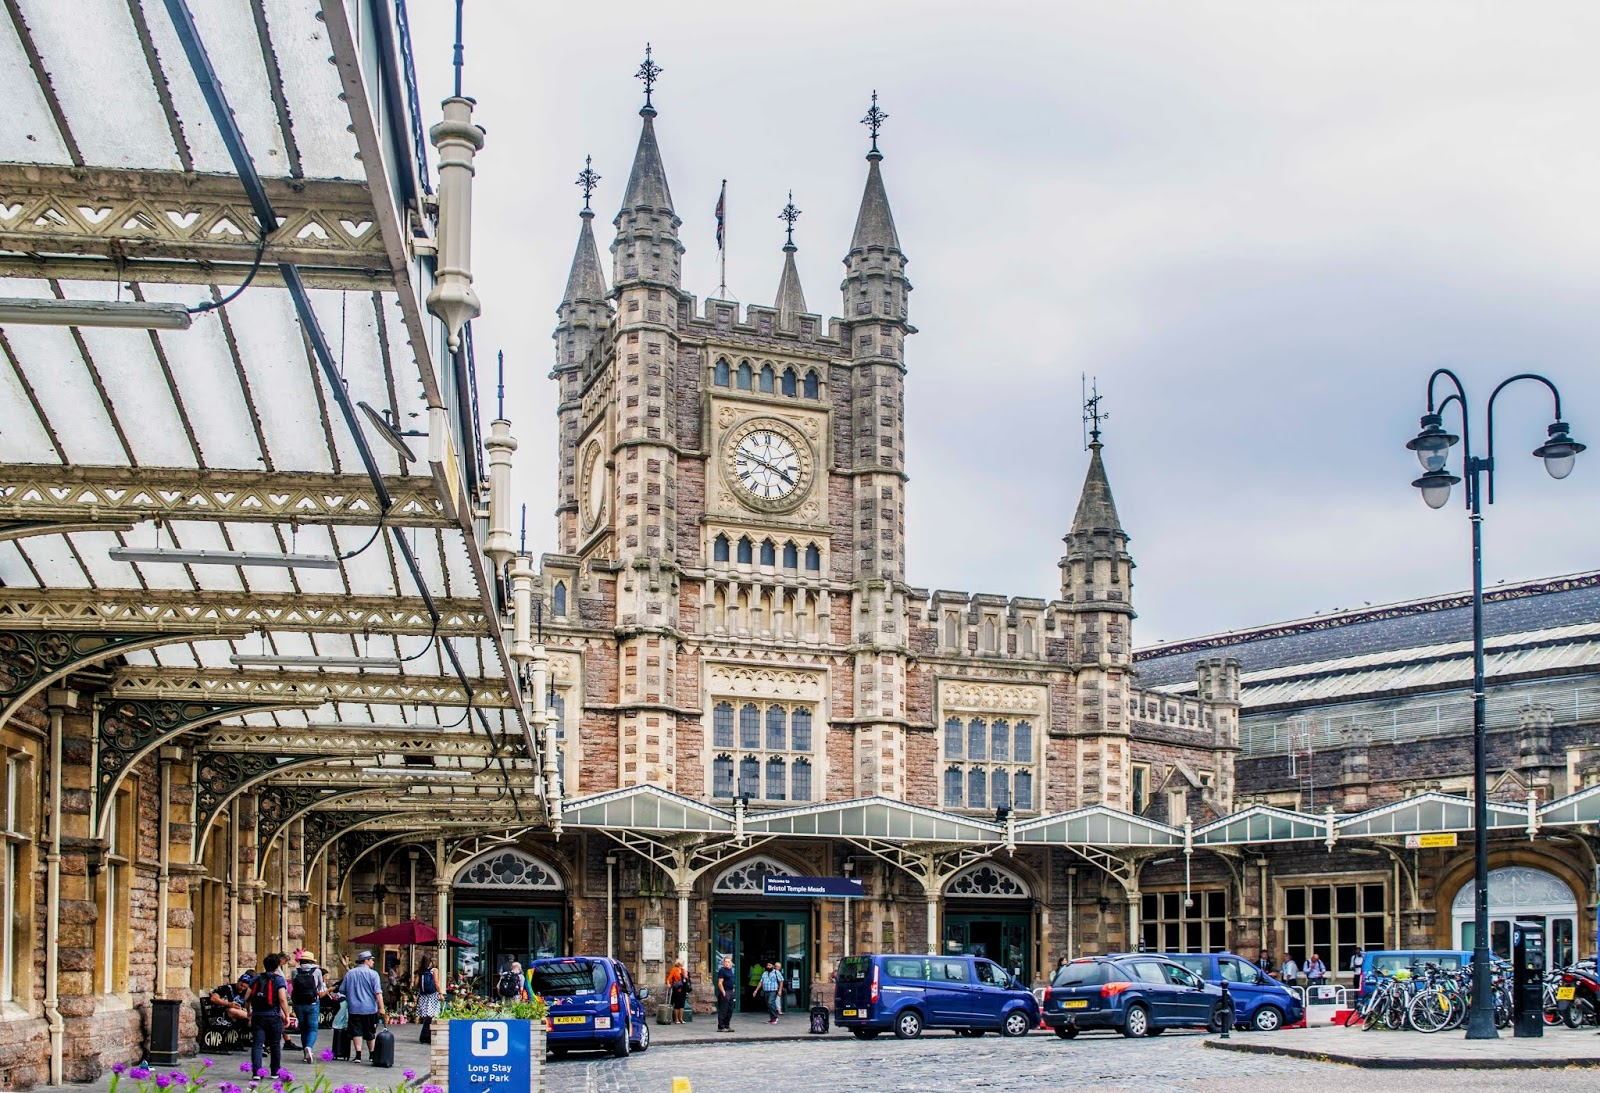 That s 175 years ago. Since then, trains have been bringing people here  continuously. That s amazing. Gothic Revival, the magnificent roof over the  ... 9f587ea68c